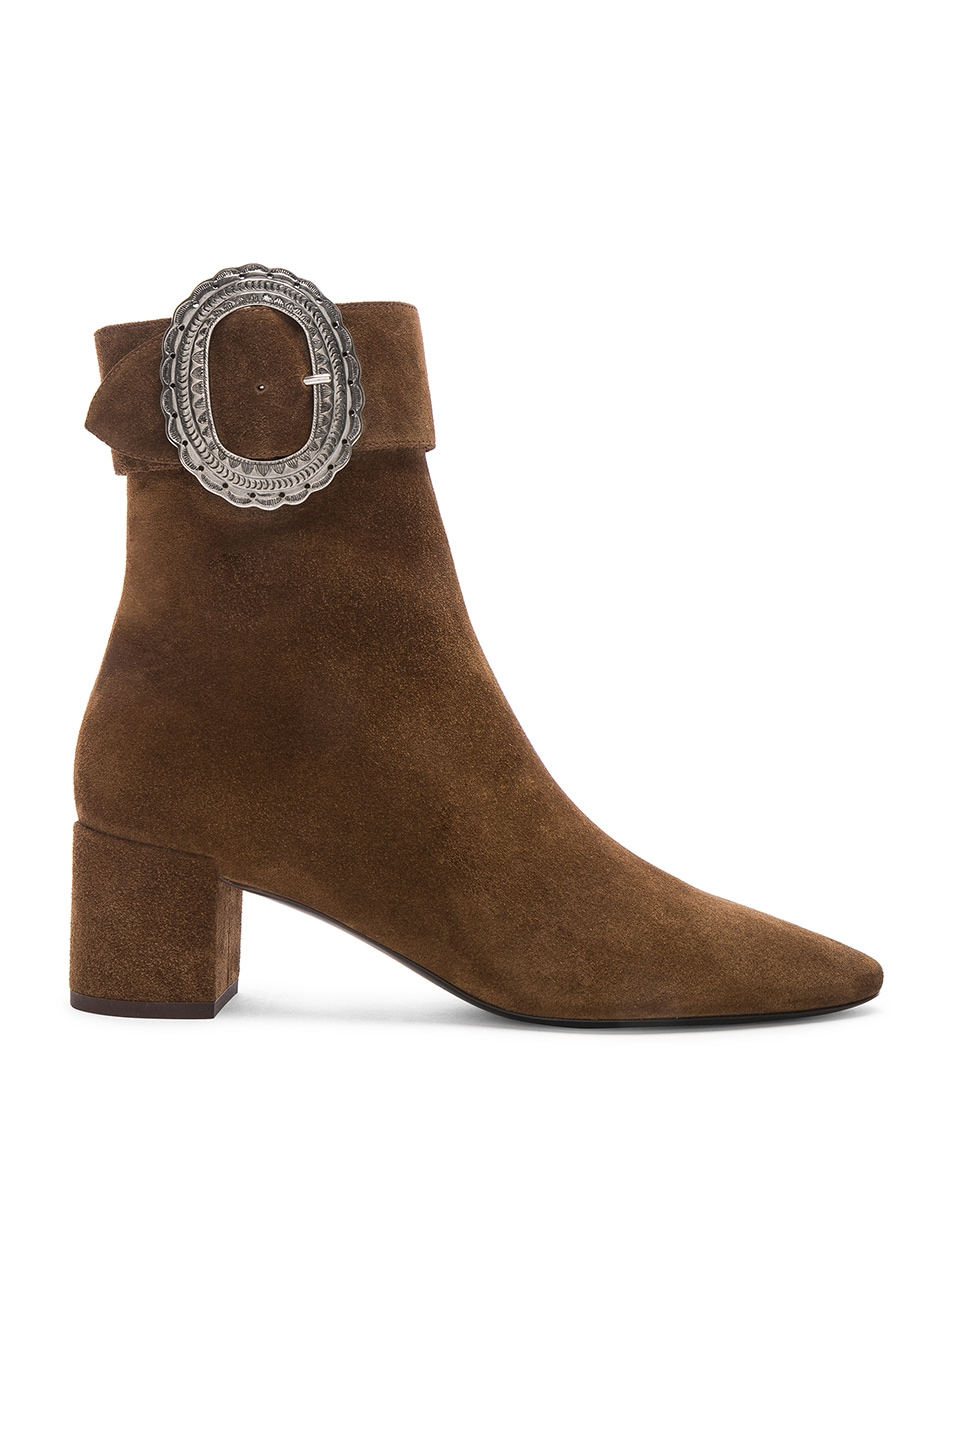 Image 1 of Saint Laurent Joplin Booties in Land